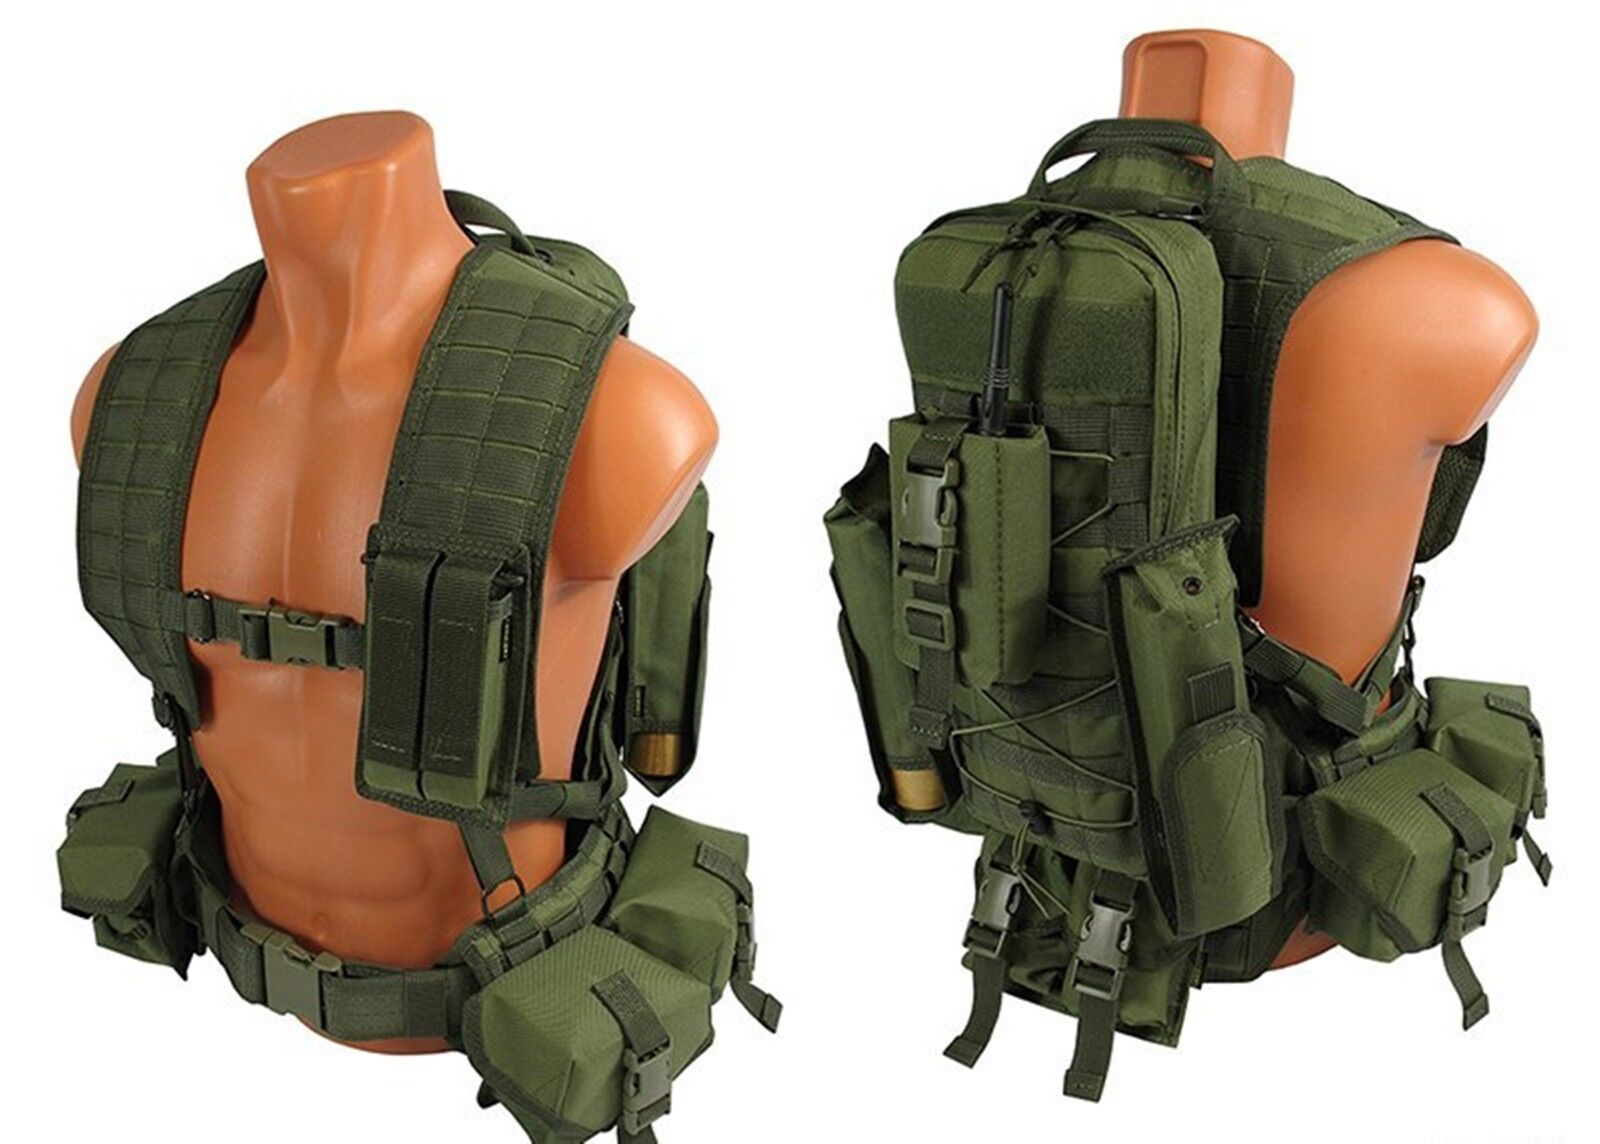 Green od molle  paintball Modular vest airsoft chest rig olive kit №33 sniper svd  a lot of concessions